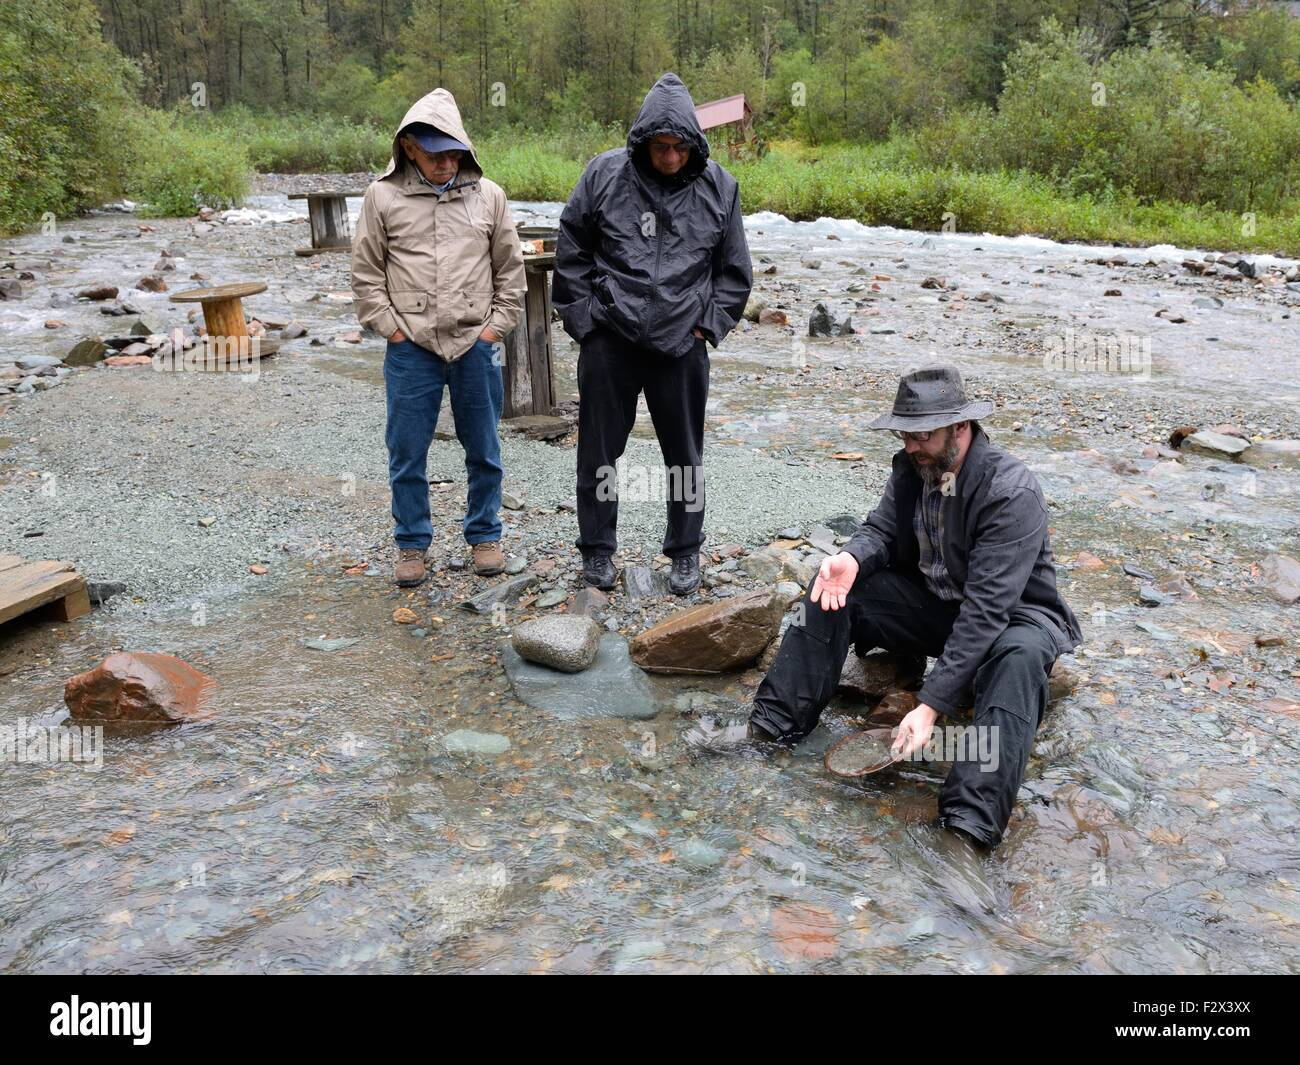 Guide showing tourists the techniques in panning for gold in a river near Juneau, Alaska, USA - Stock Image